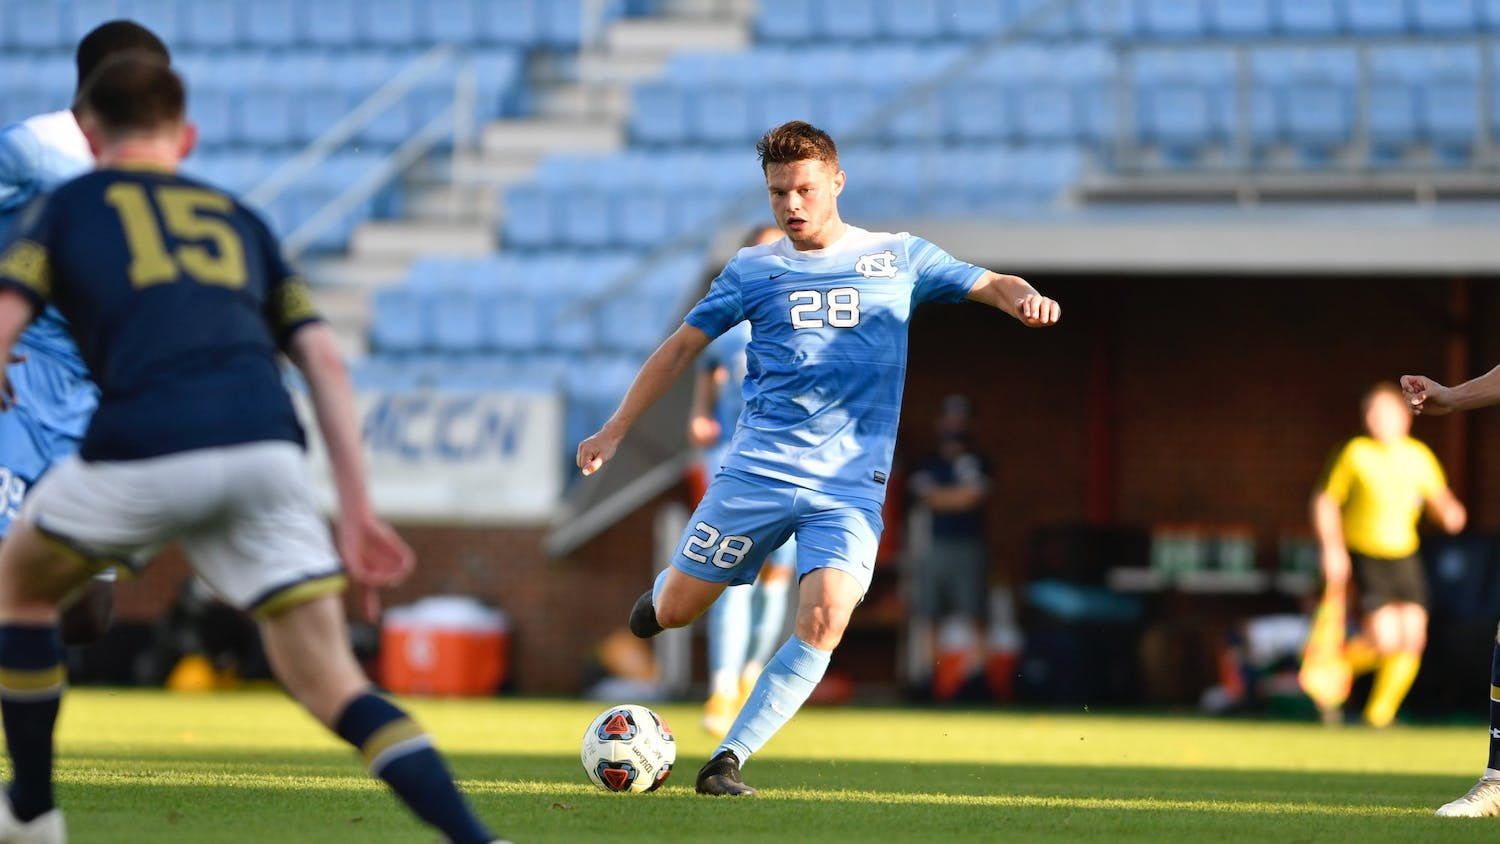 UNC's first year midfielder Tim Schels (28) kicks the ball during the first round of the ACC tournament against Notre Dame in Dorrance Field on Sunday, Nov. 15, 2020. UNC fell to Notre Dame 1-0. Photo courtesy of Dana Gentry for UNC Athletic Communications.